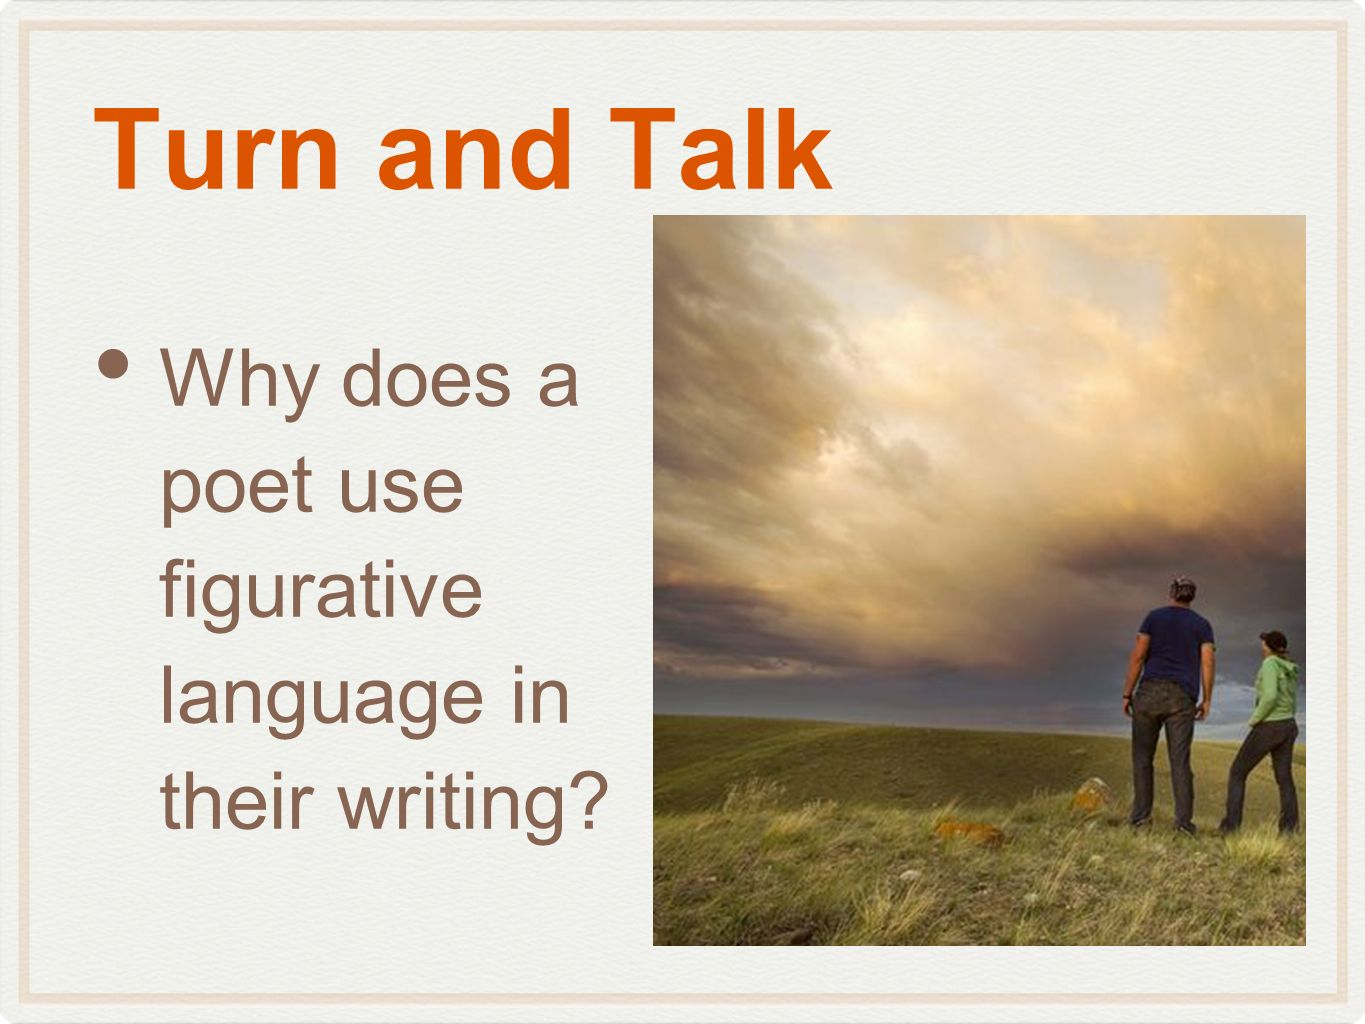 Turn and Talk Why does a poet use figurative language in their writing?